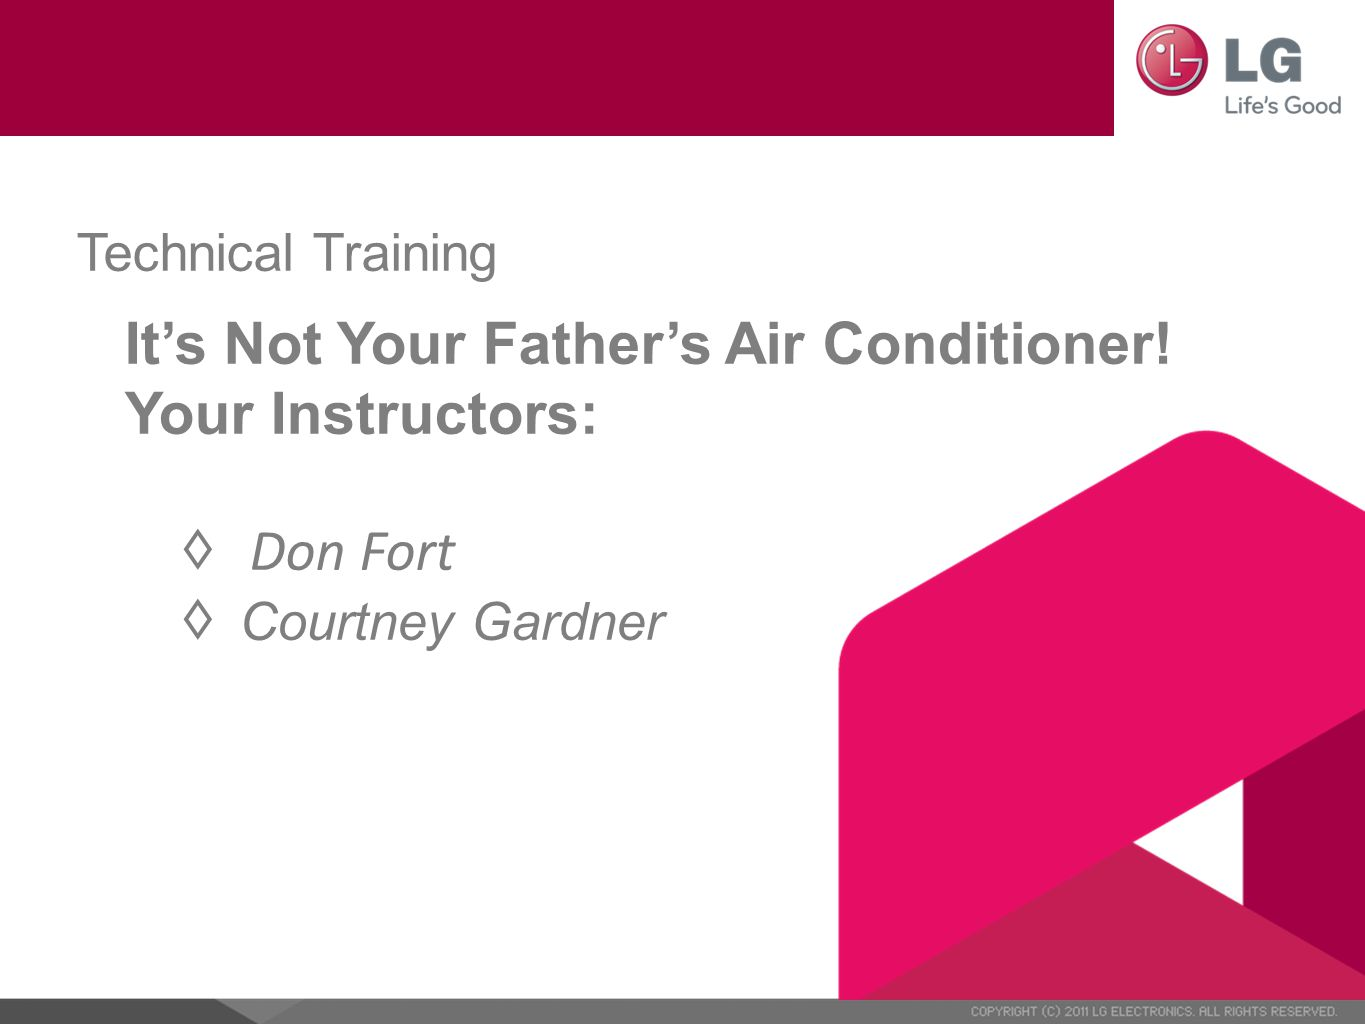 Technical Training It's Not Your Father's Air Conditioner! Your Instructors: ◊ Don Fort ◊ Courtney Gardner